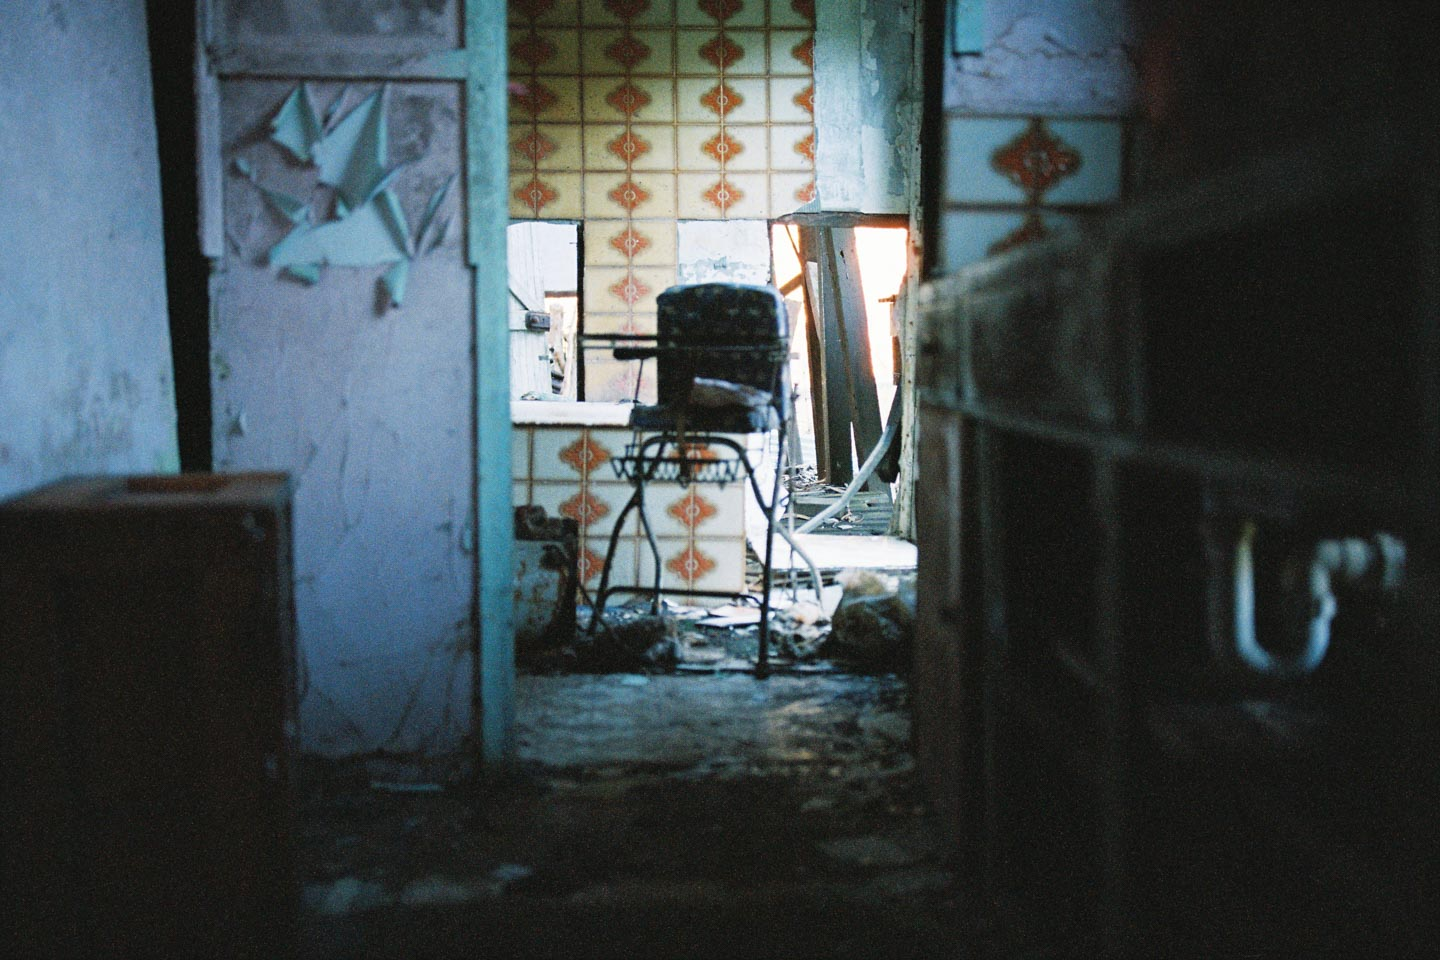 Children's High Chair in Abandoned House